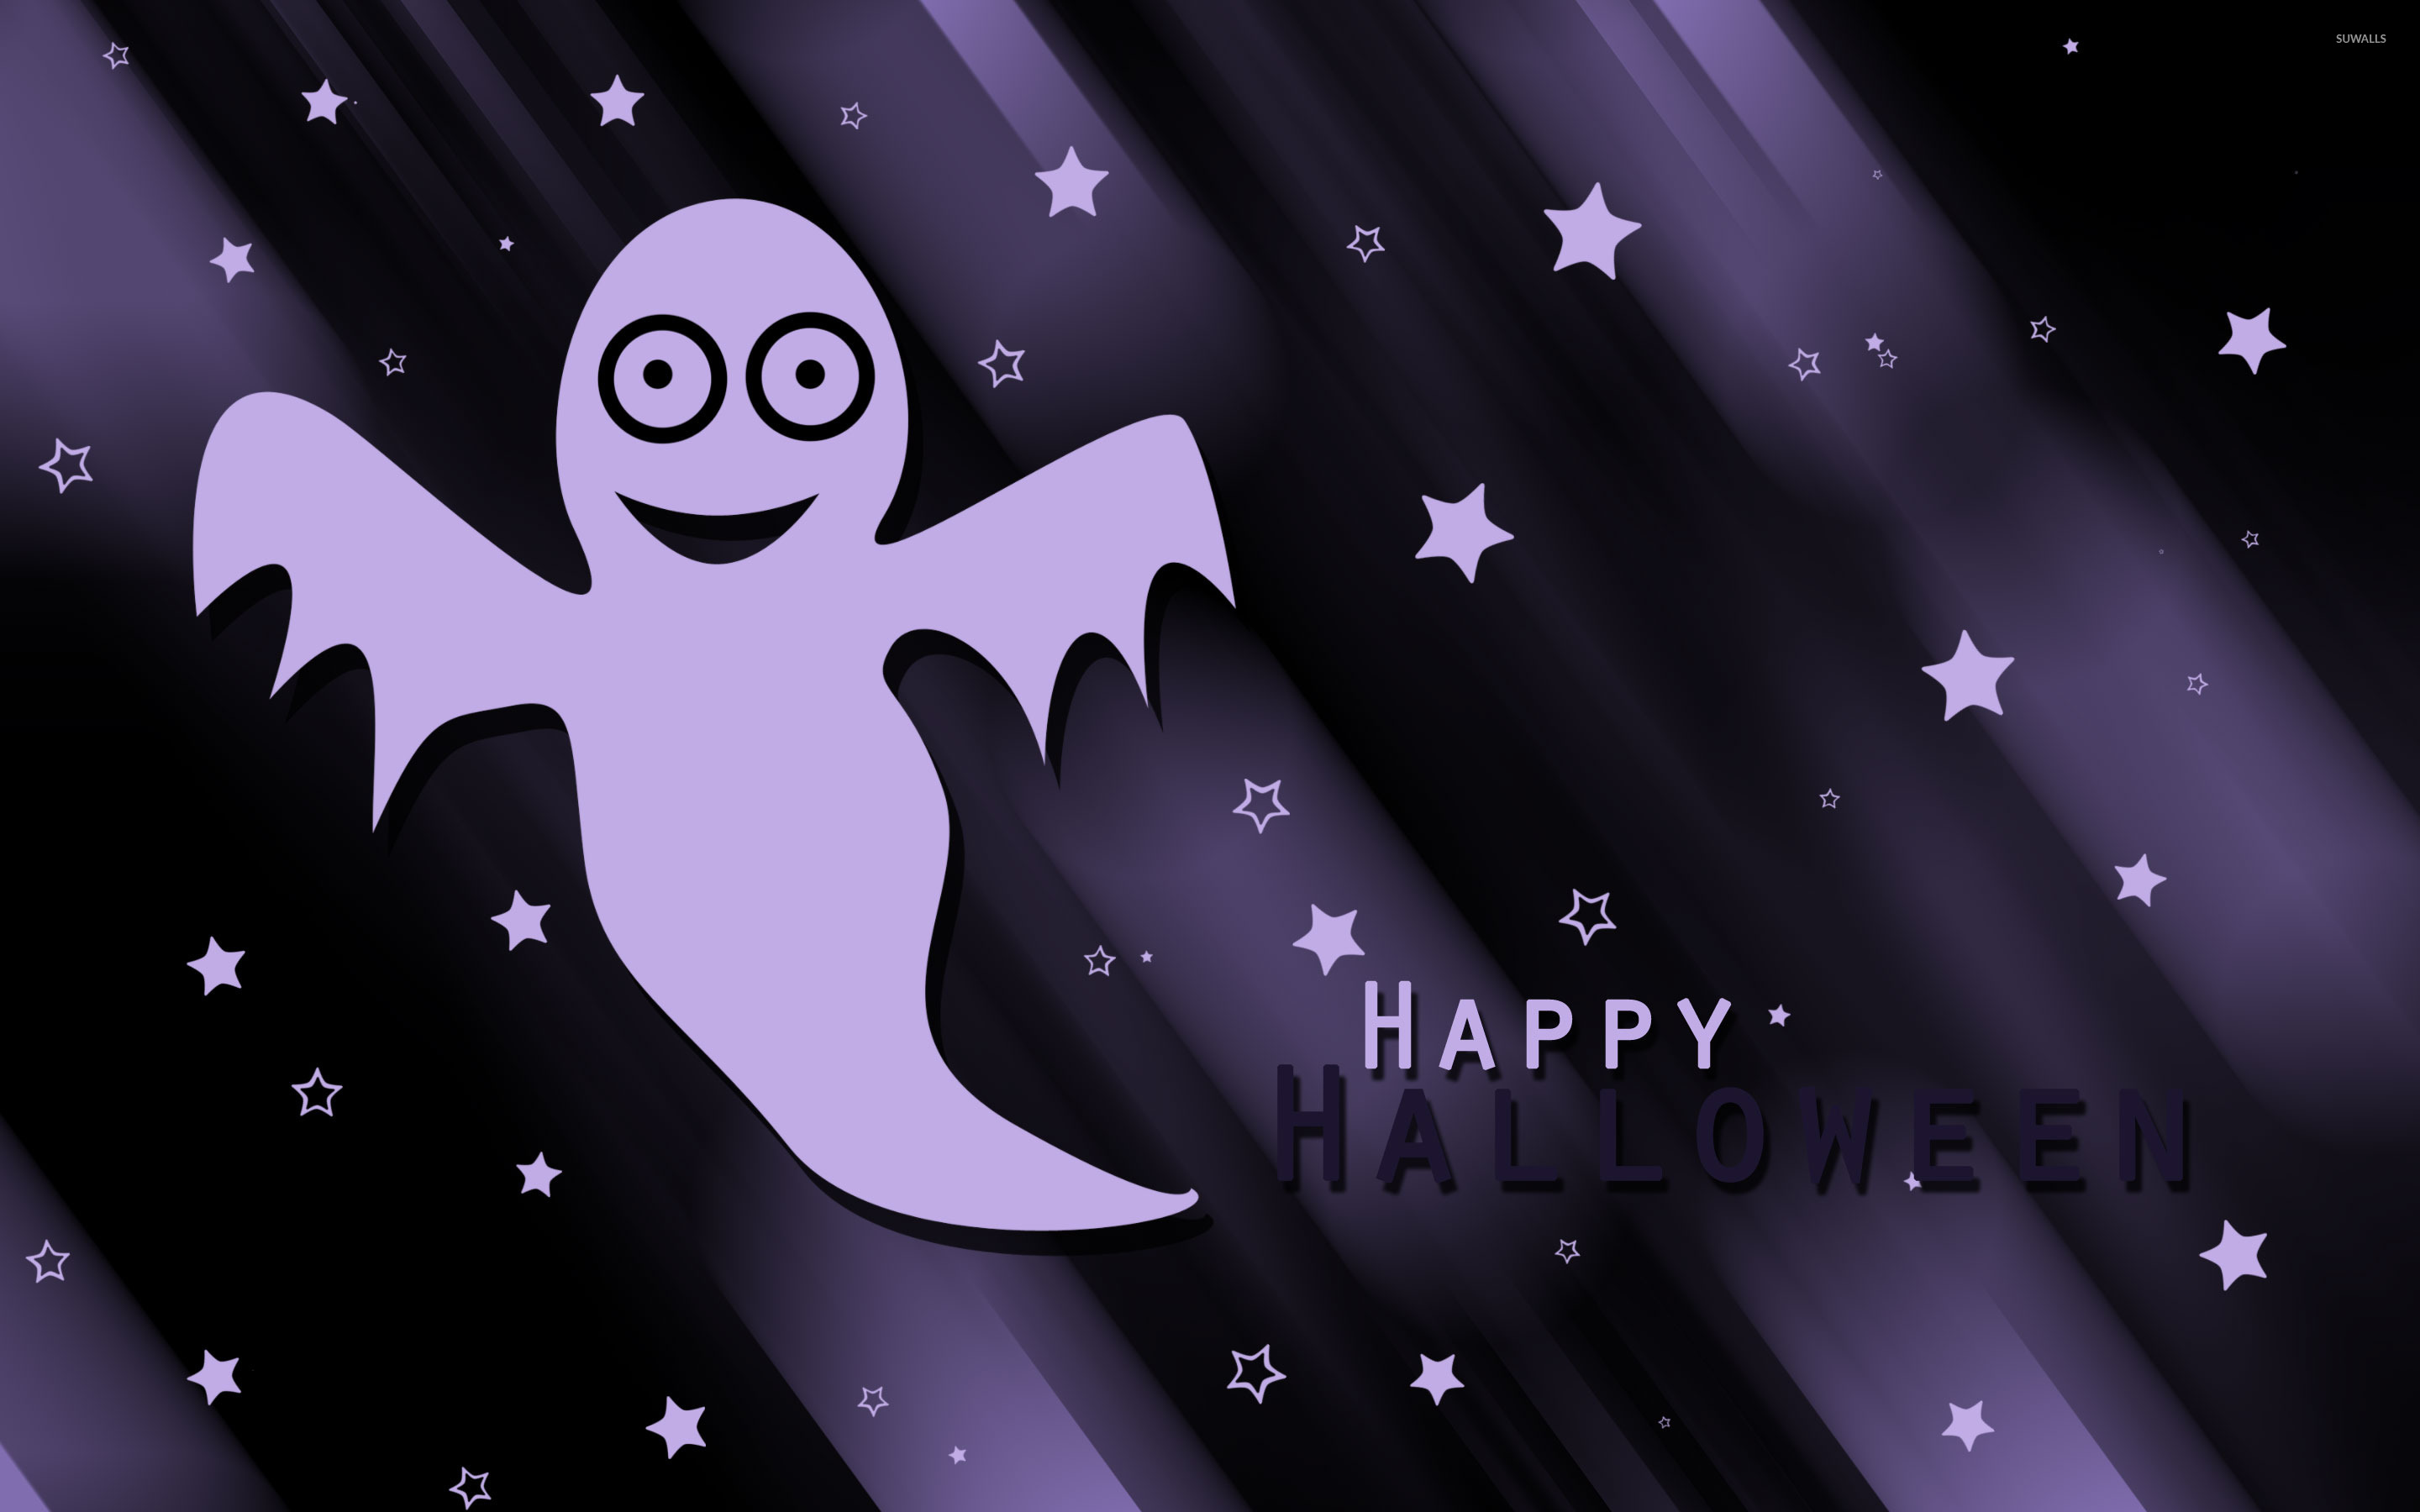 Cute Halloween Ghost Wallpaper Images Pictures   Becuo 2880x1800